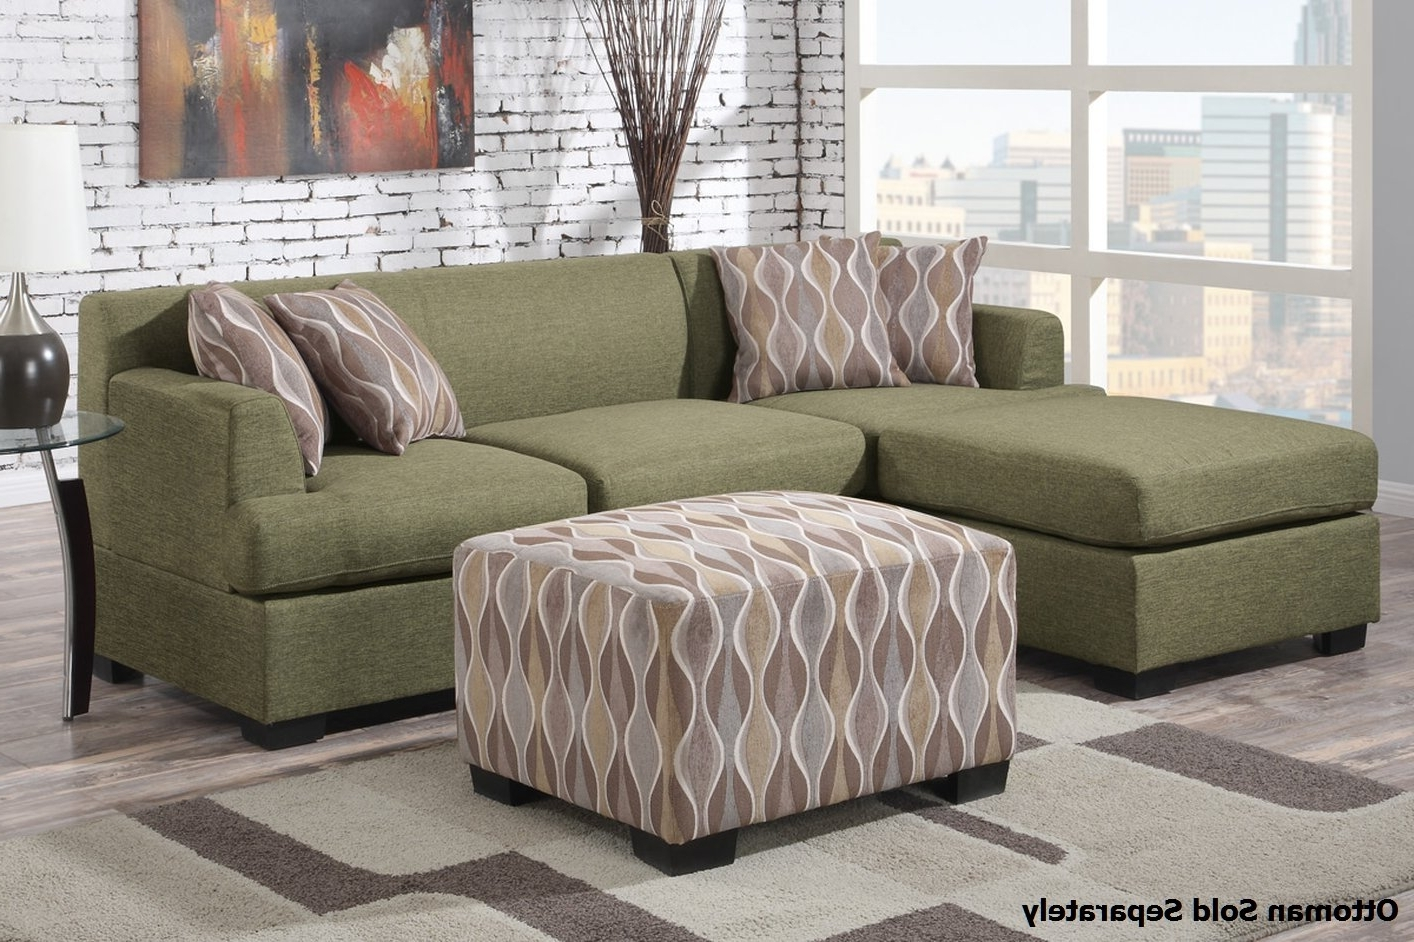 Widely Used Montreal Sectional Sofas Pertaining To Montreal Ii Green Fabric Sectional Sofa – Steal A Sofa Furniture (View 7 of 15)